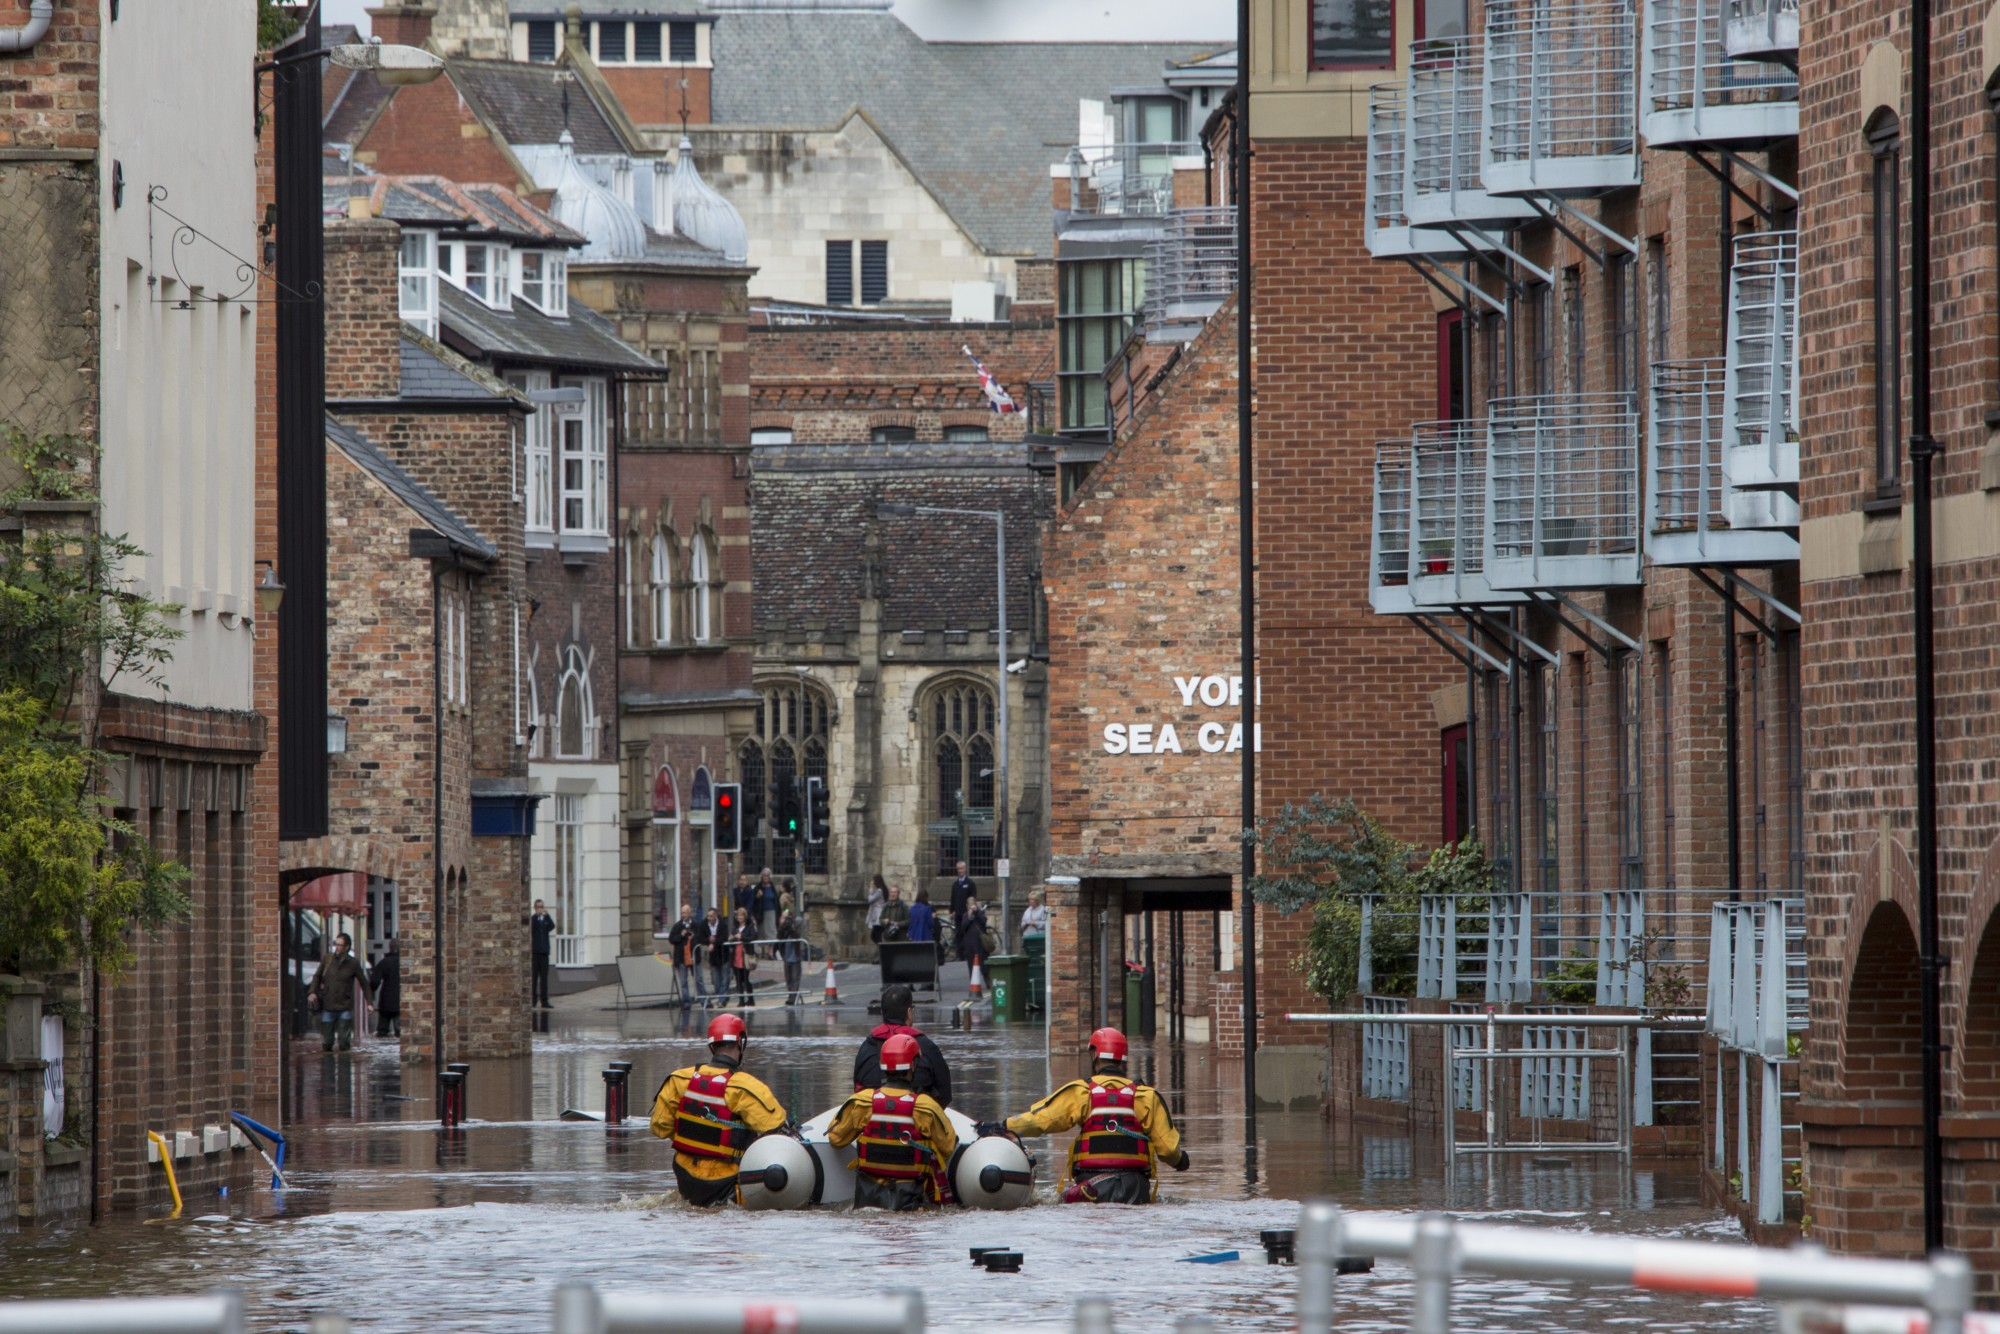 York, United Kingdom –River Ouse overflows following a period of heavy rain and floods the streets of central York